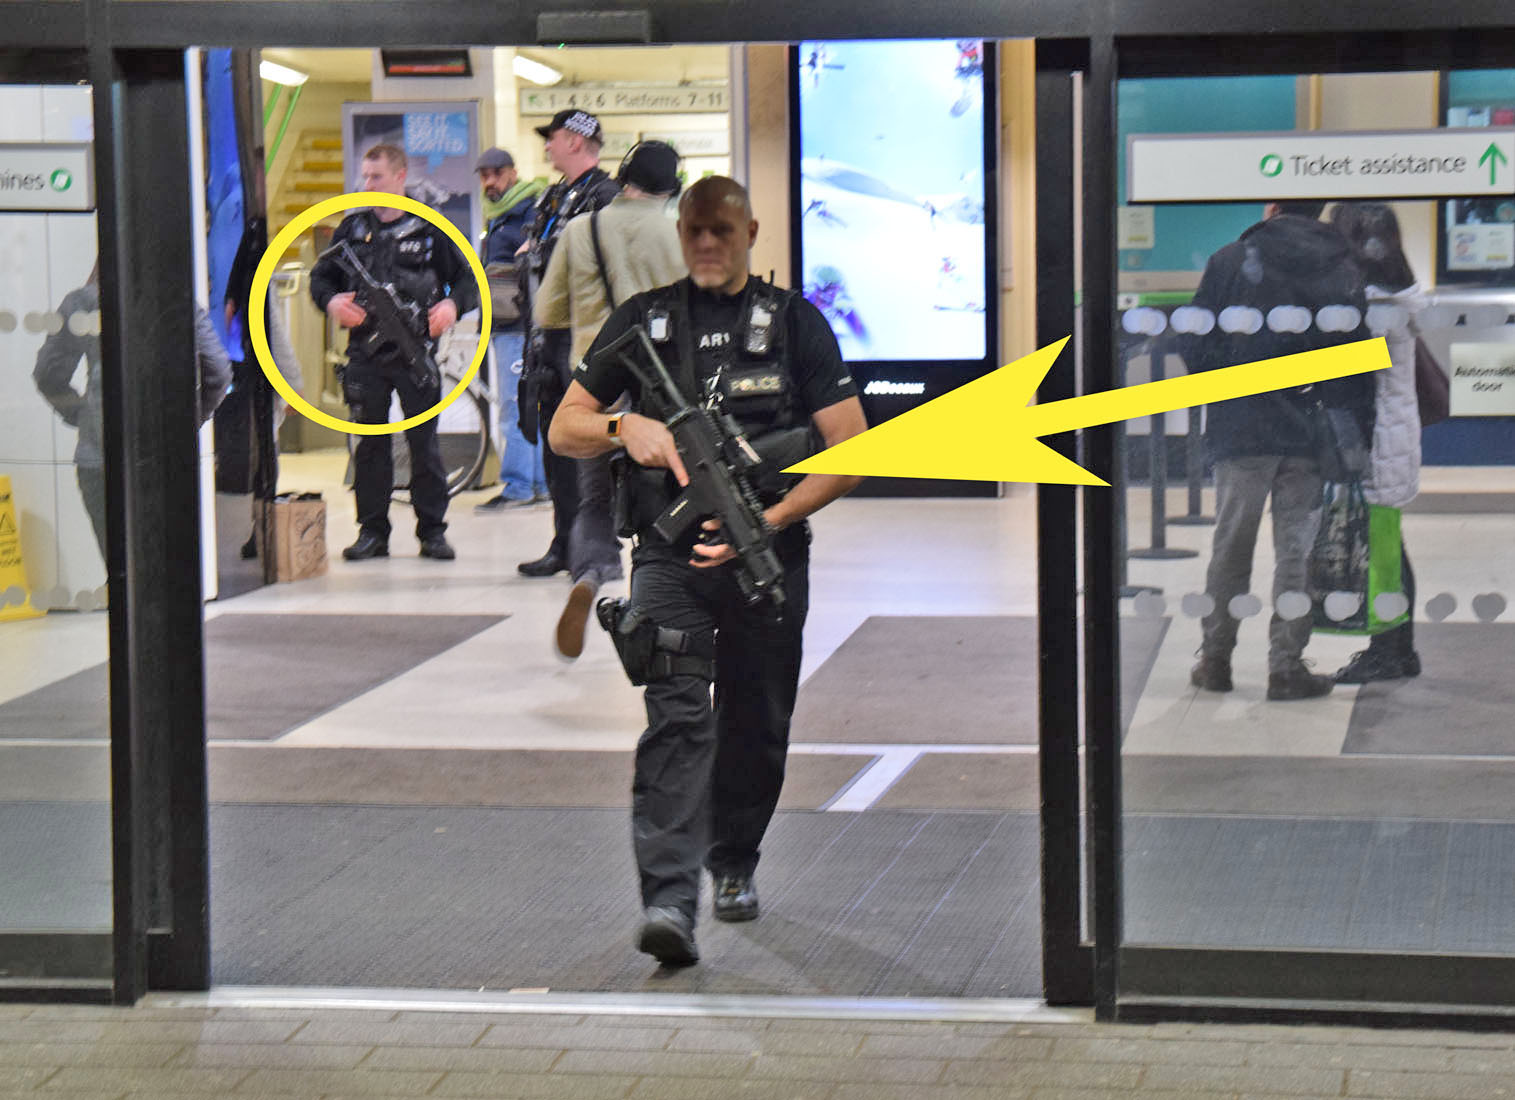 Armed Police swoop Watford Train Station for Suspect